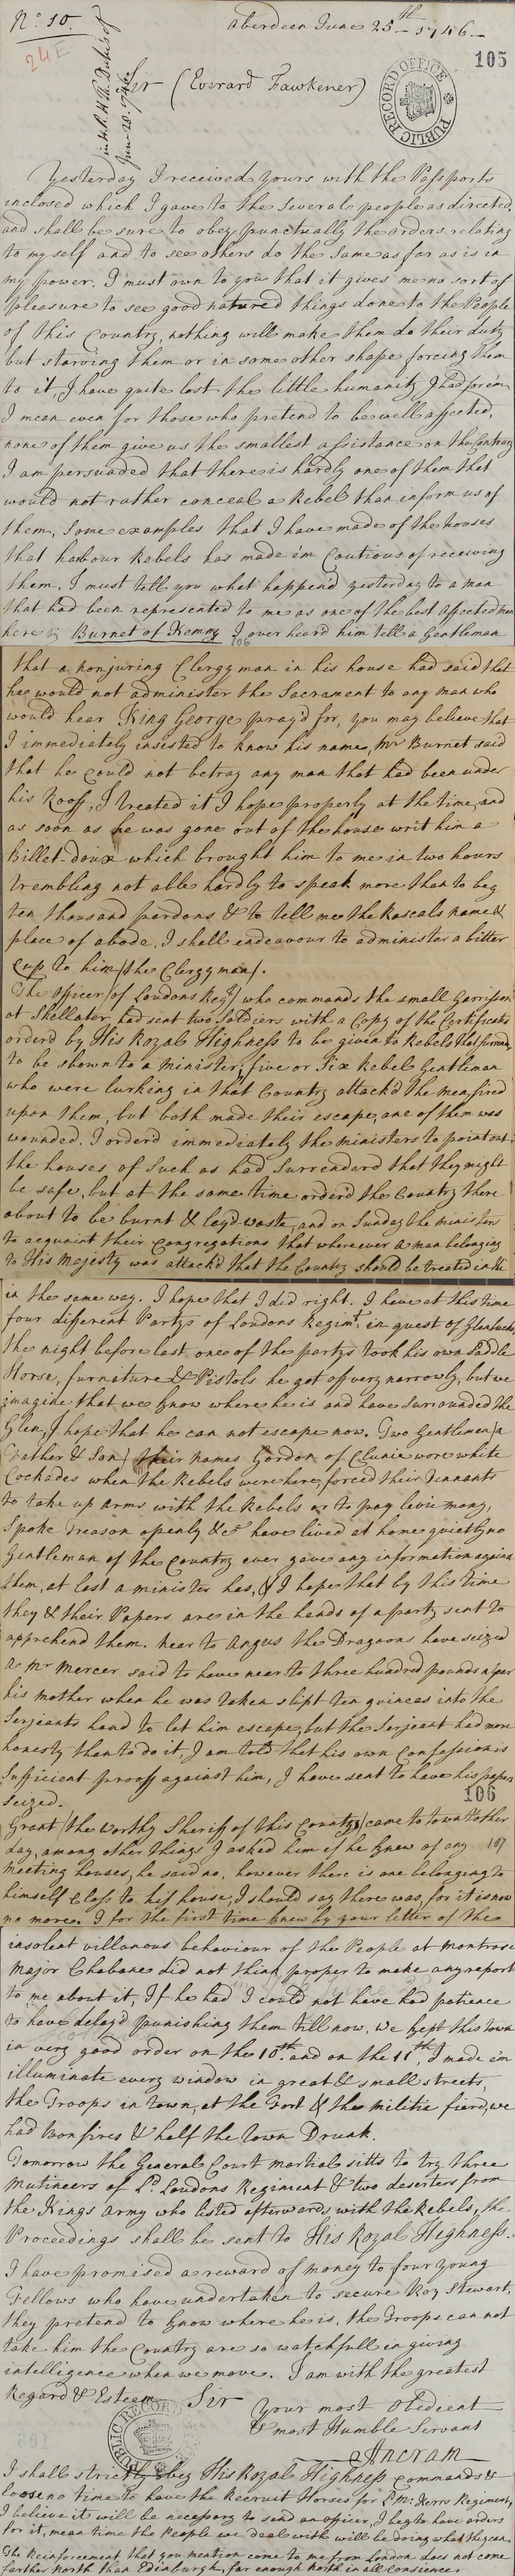 Letter from the Earl of Ancram, 1746 (SP 54/32/24E)